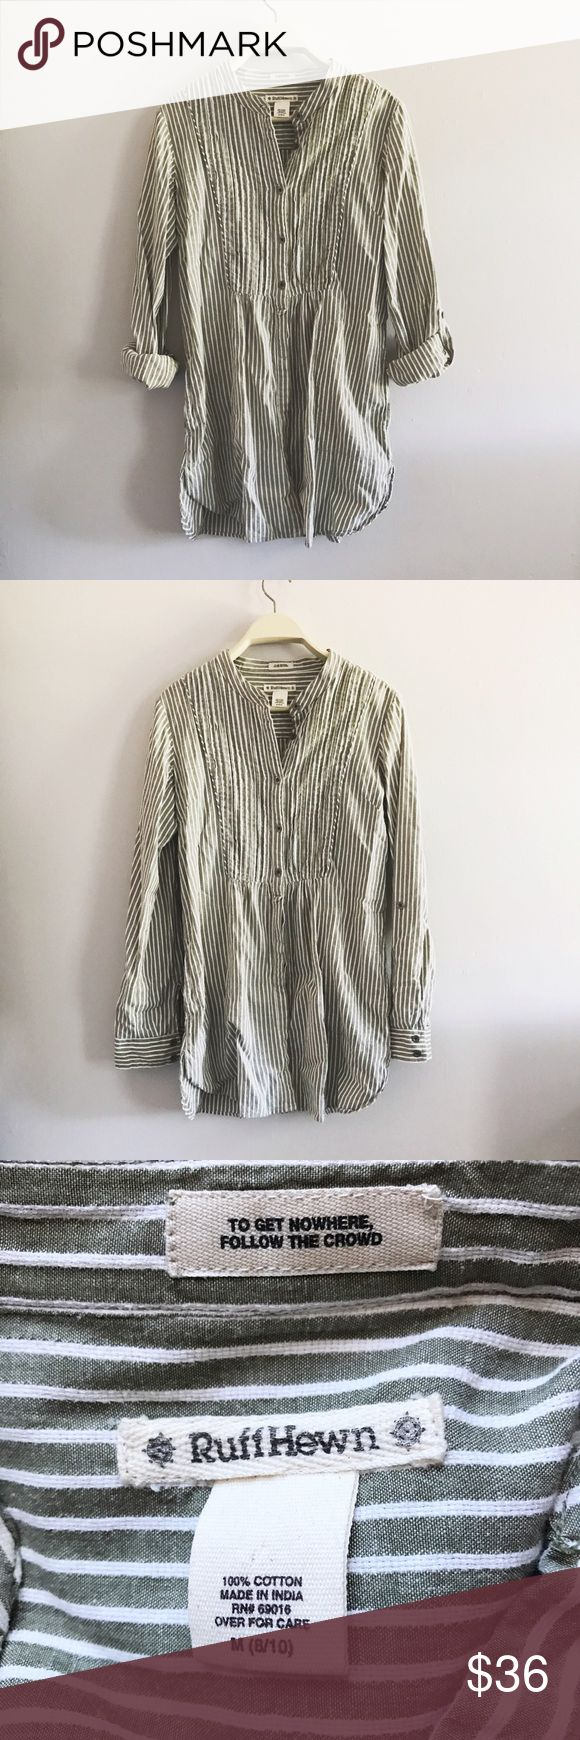 Ruff Hewn Cotton Linen Striped Tunic This Ruff Hewn cotton linen tunic features a gorgeous cream and earthy olive green striping pattern. It is in great condition and the sleeves can be worn rolled up or down. It is a size medium. Ruff Hewn Tops Tunics